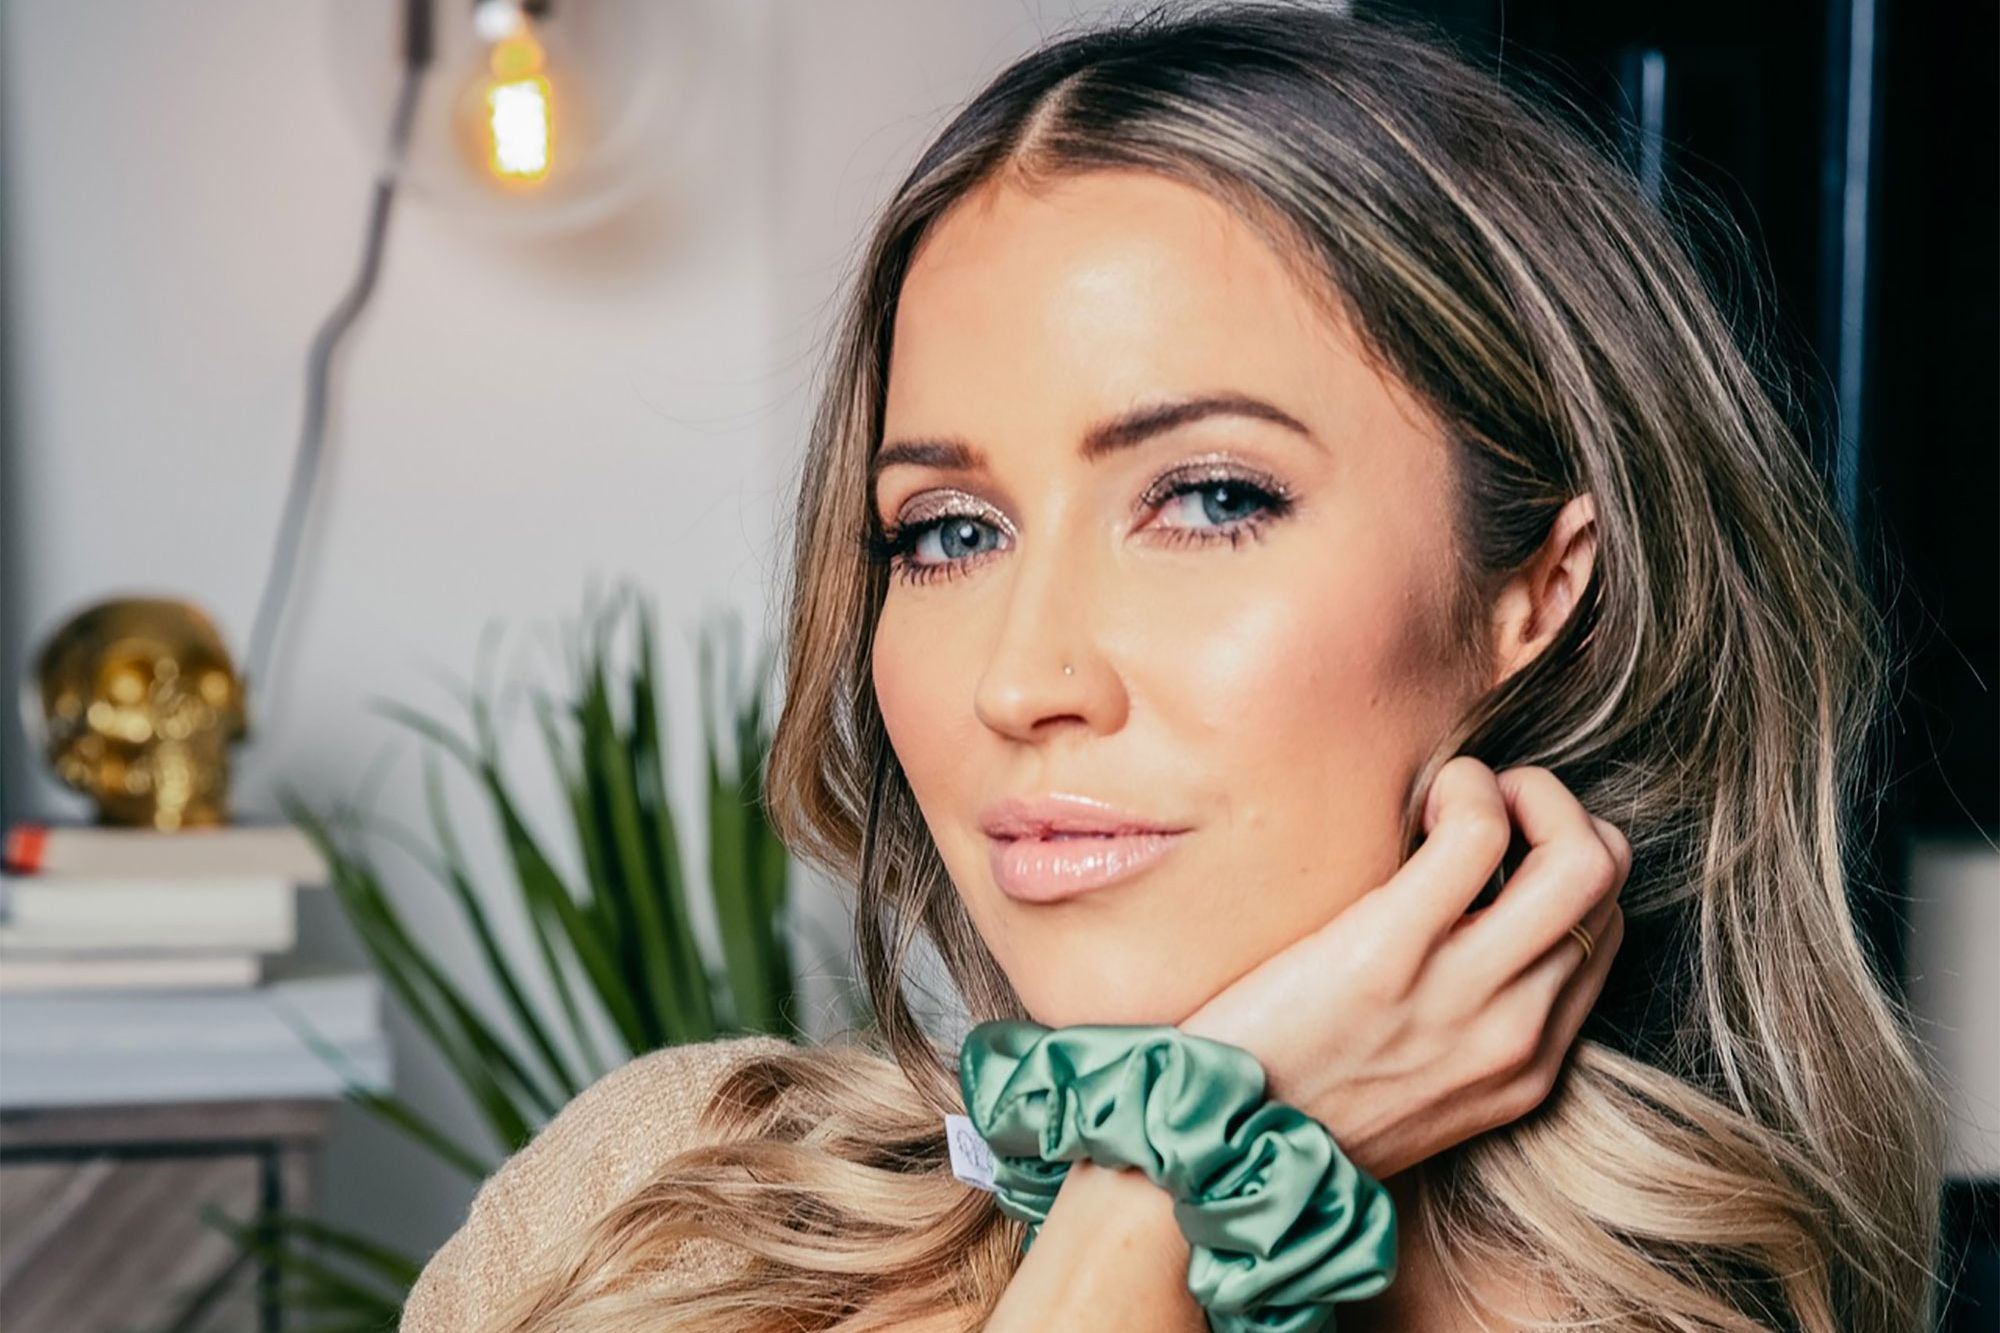 How 'Bachelorette' Star Kaitlyn Bristowe Leveraged Reality TV Fame Into Multiple Successful Businesses